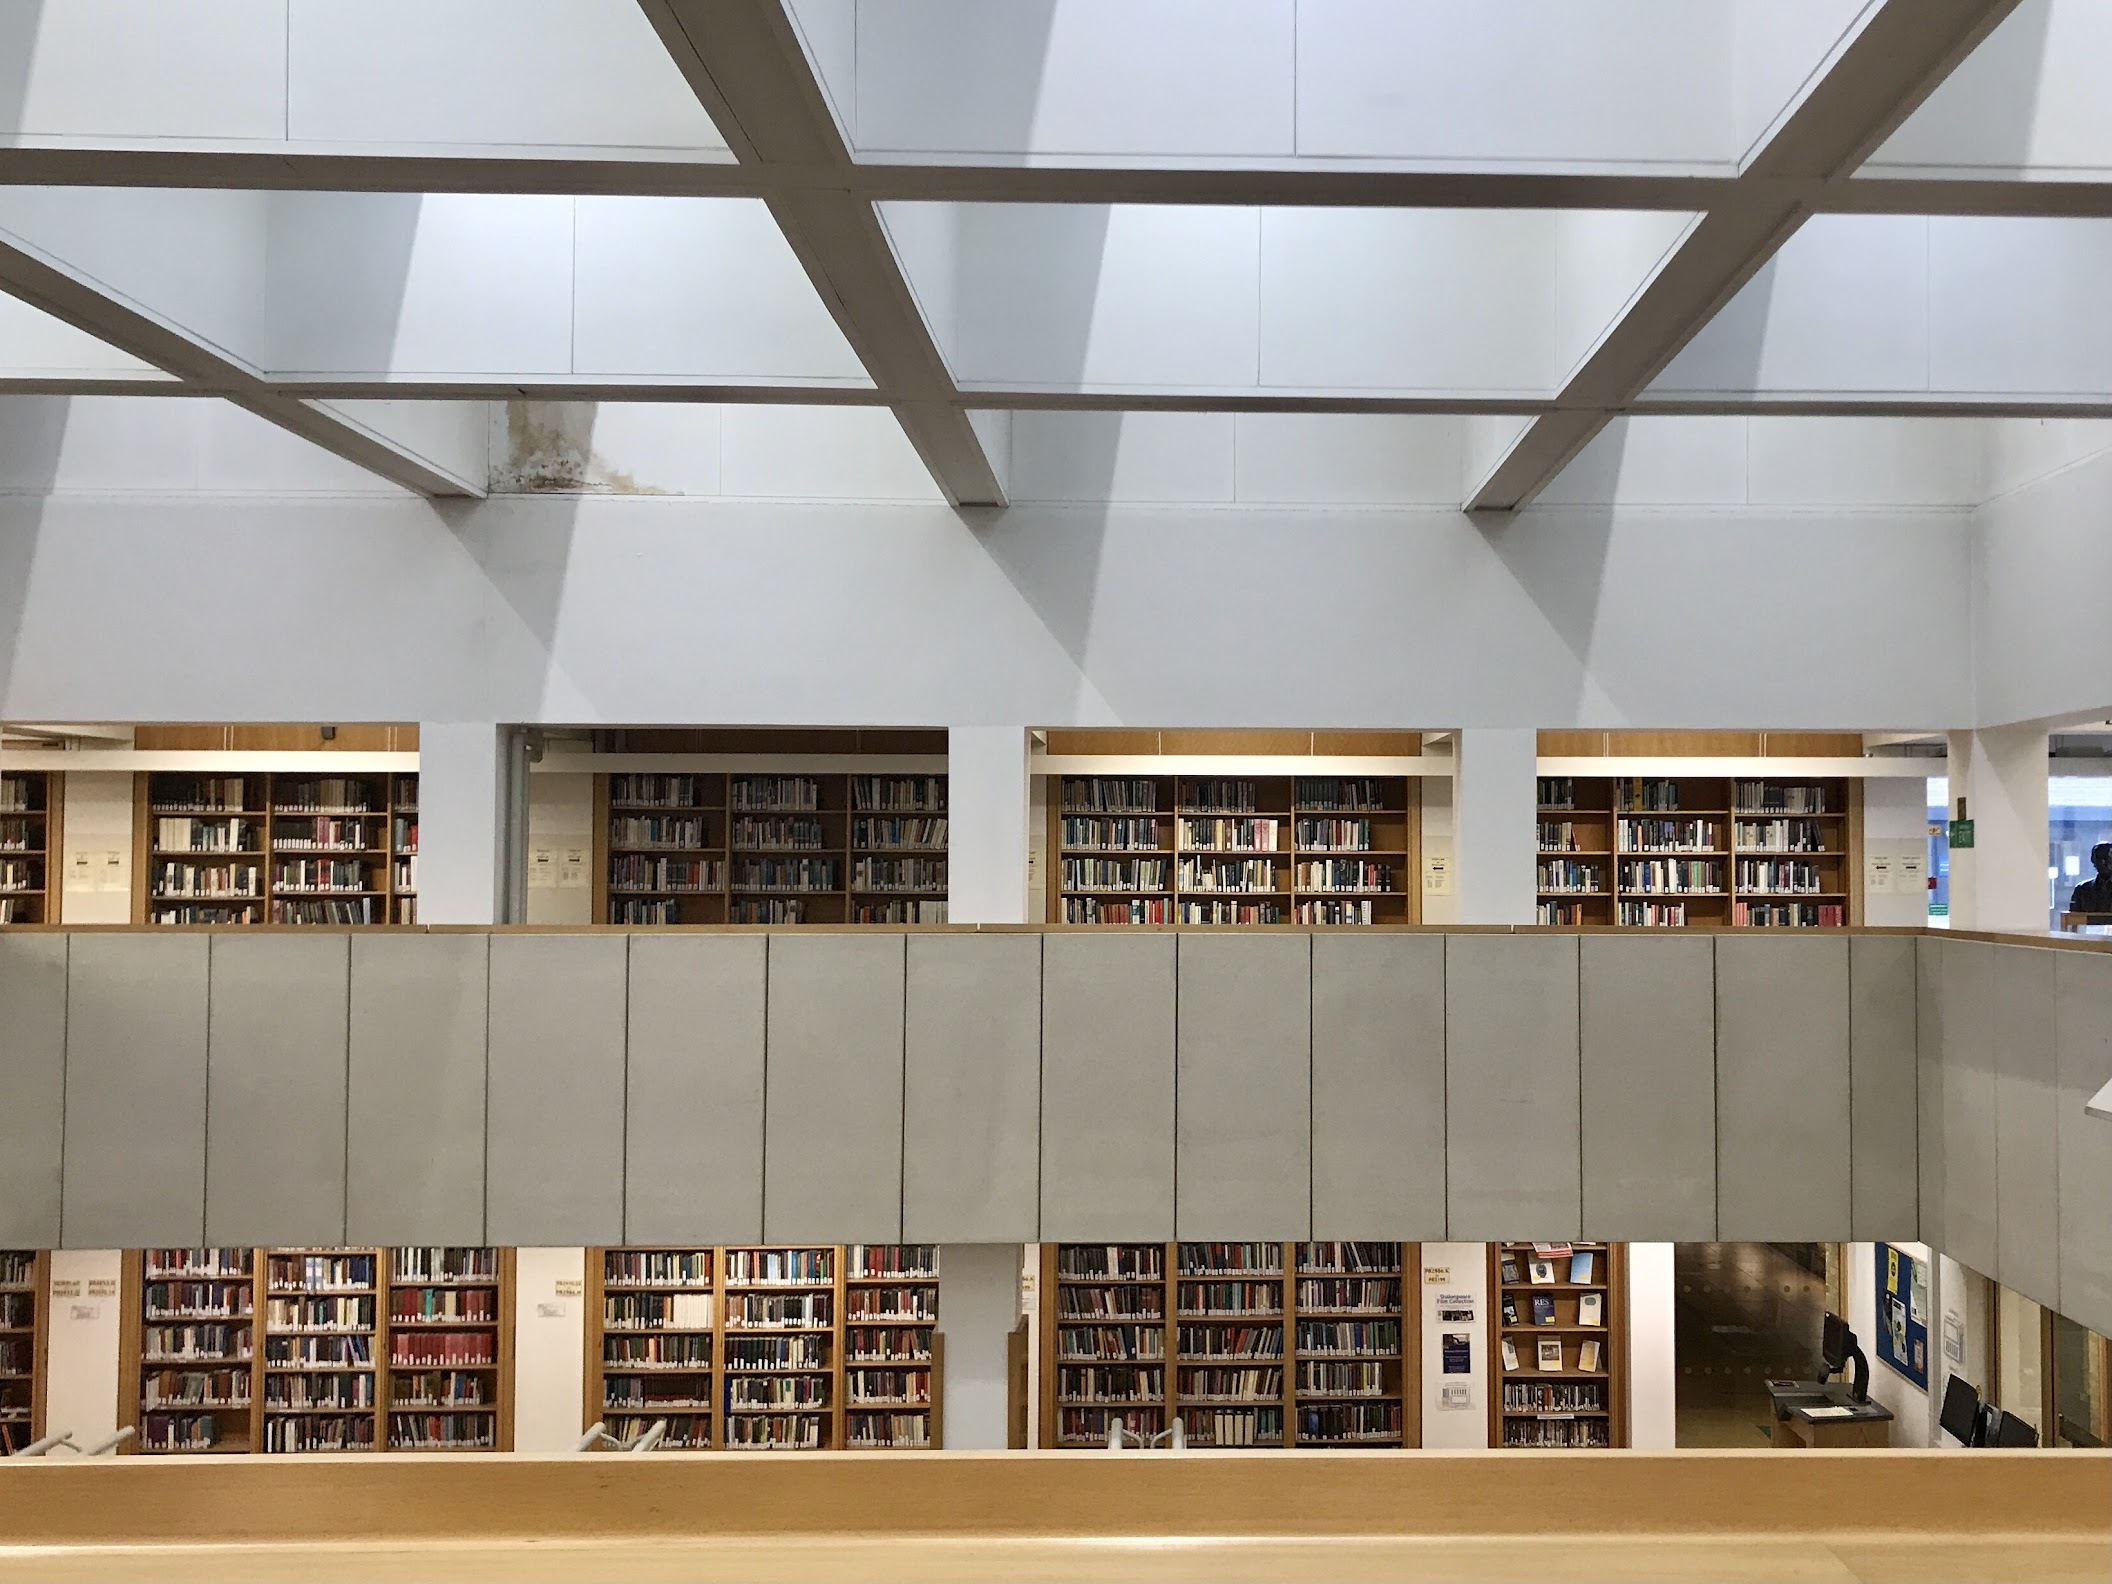 A photo taken from the top floor of the English Faculty Library, showing bookshelves.